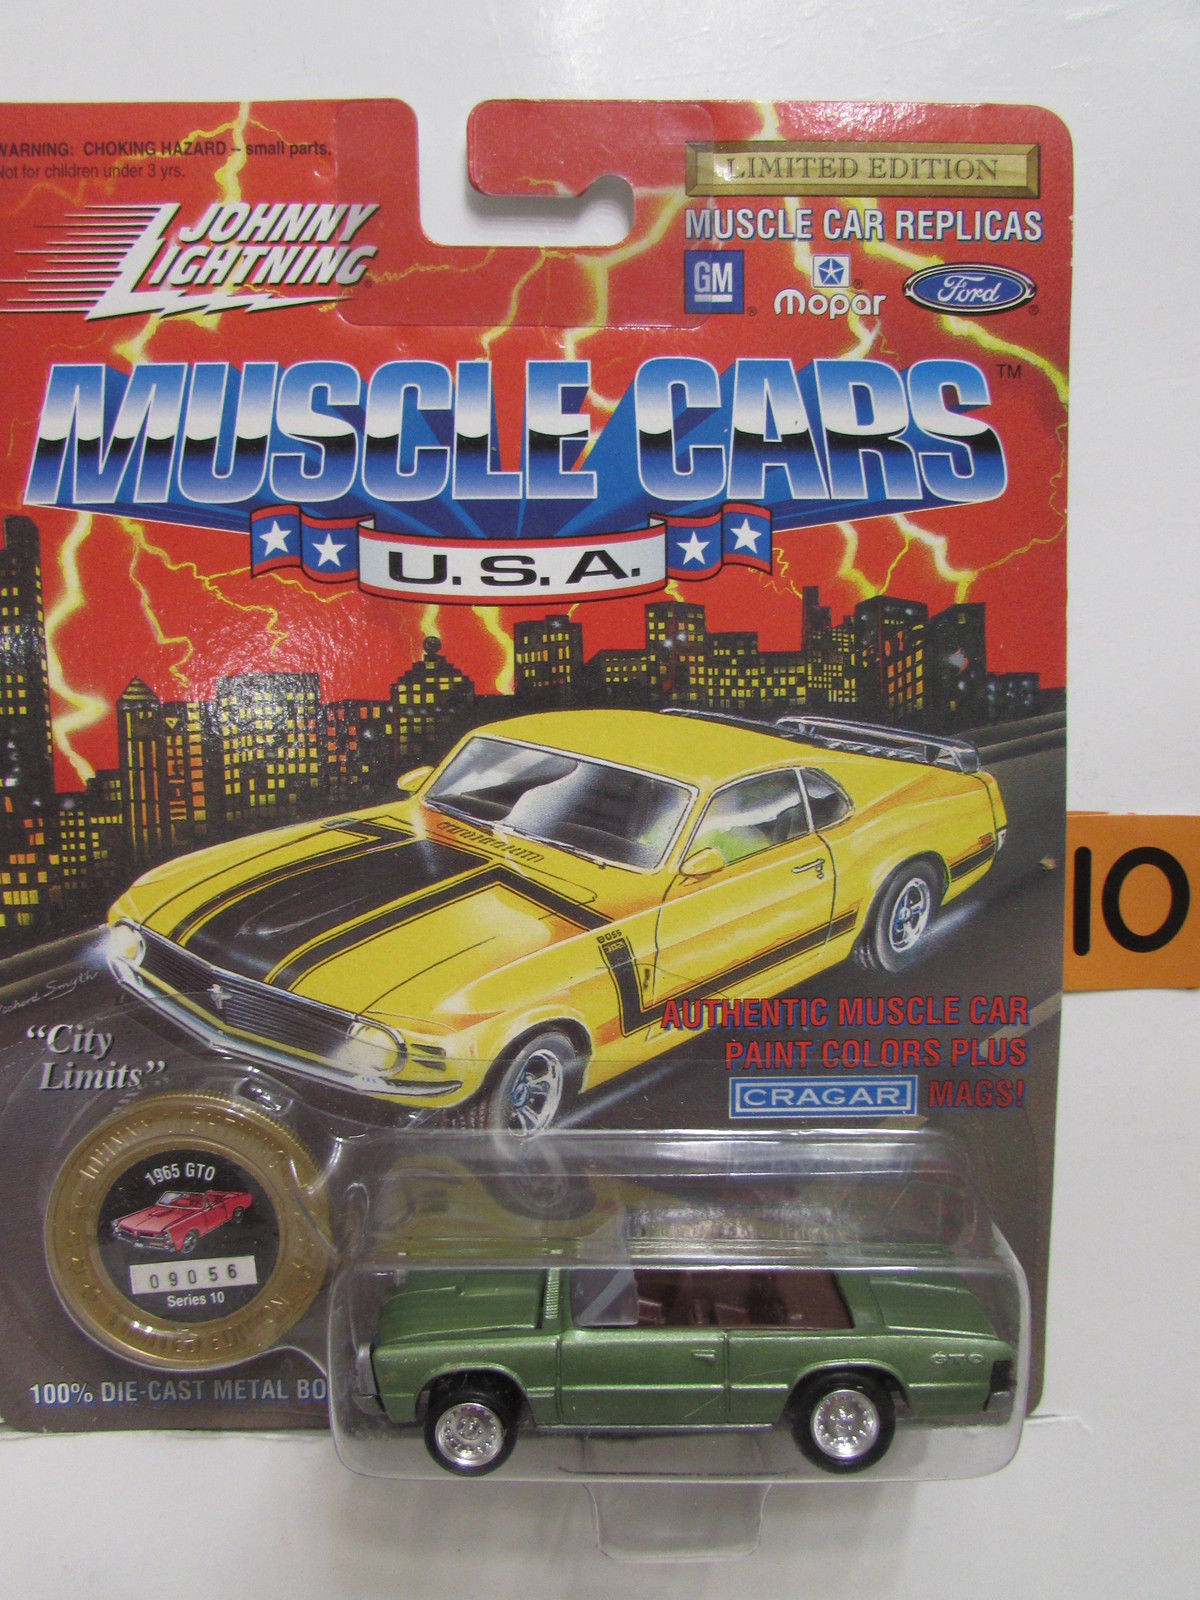 1994 JOHNNY LIGHTNING MUSCLE CARS - 1965 GTO GREEN SERIES 10